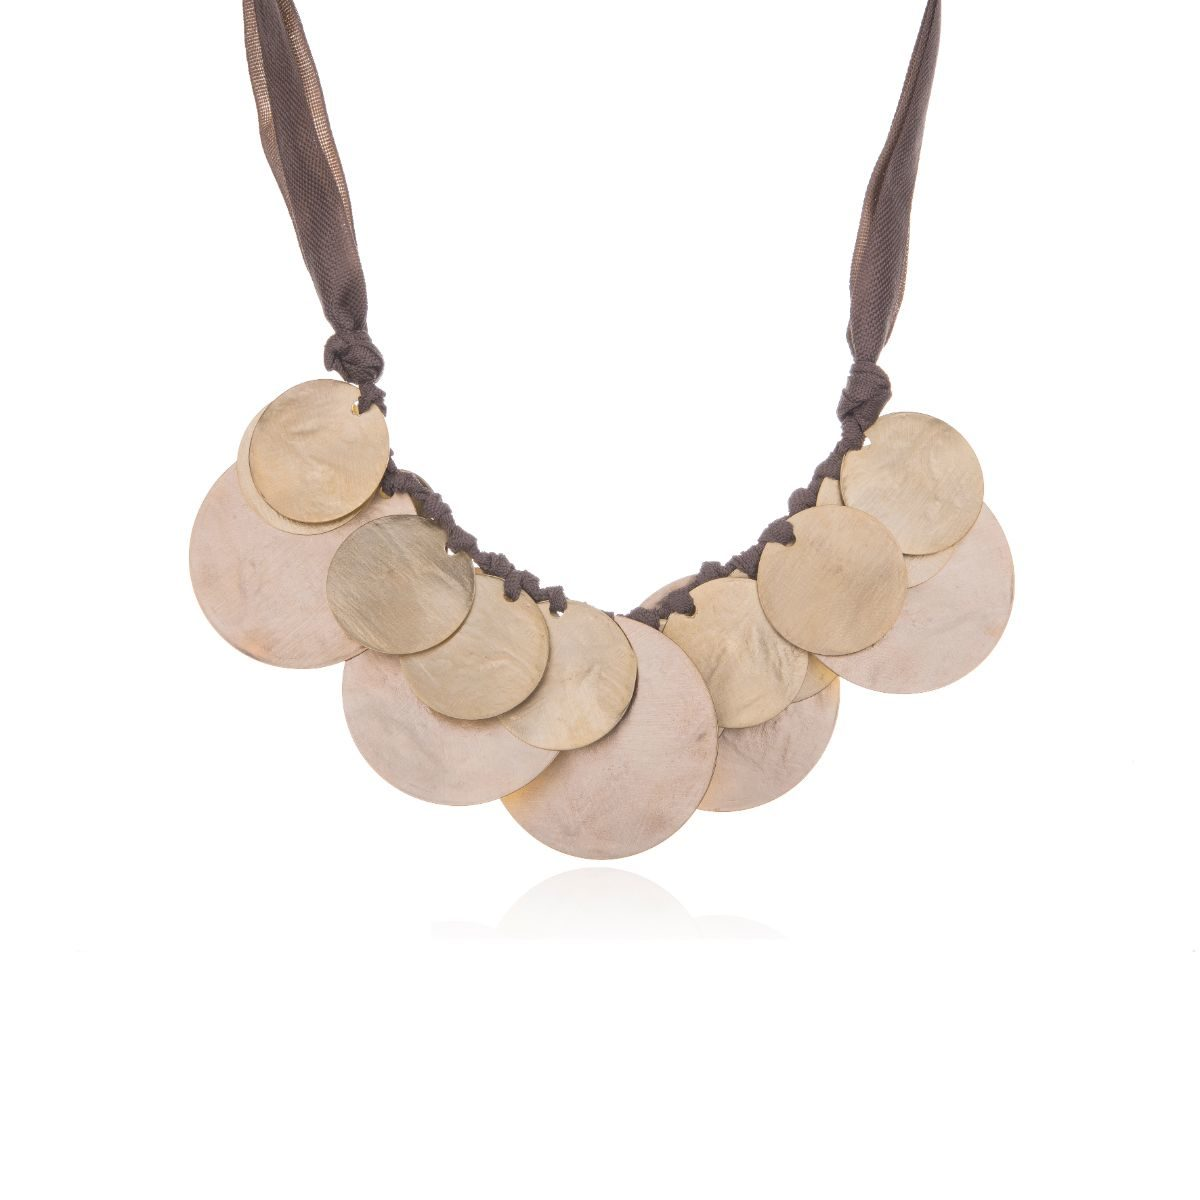 Medieval short chevron necklace with gold plated brass pieces in a circular shape on top of each other